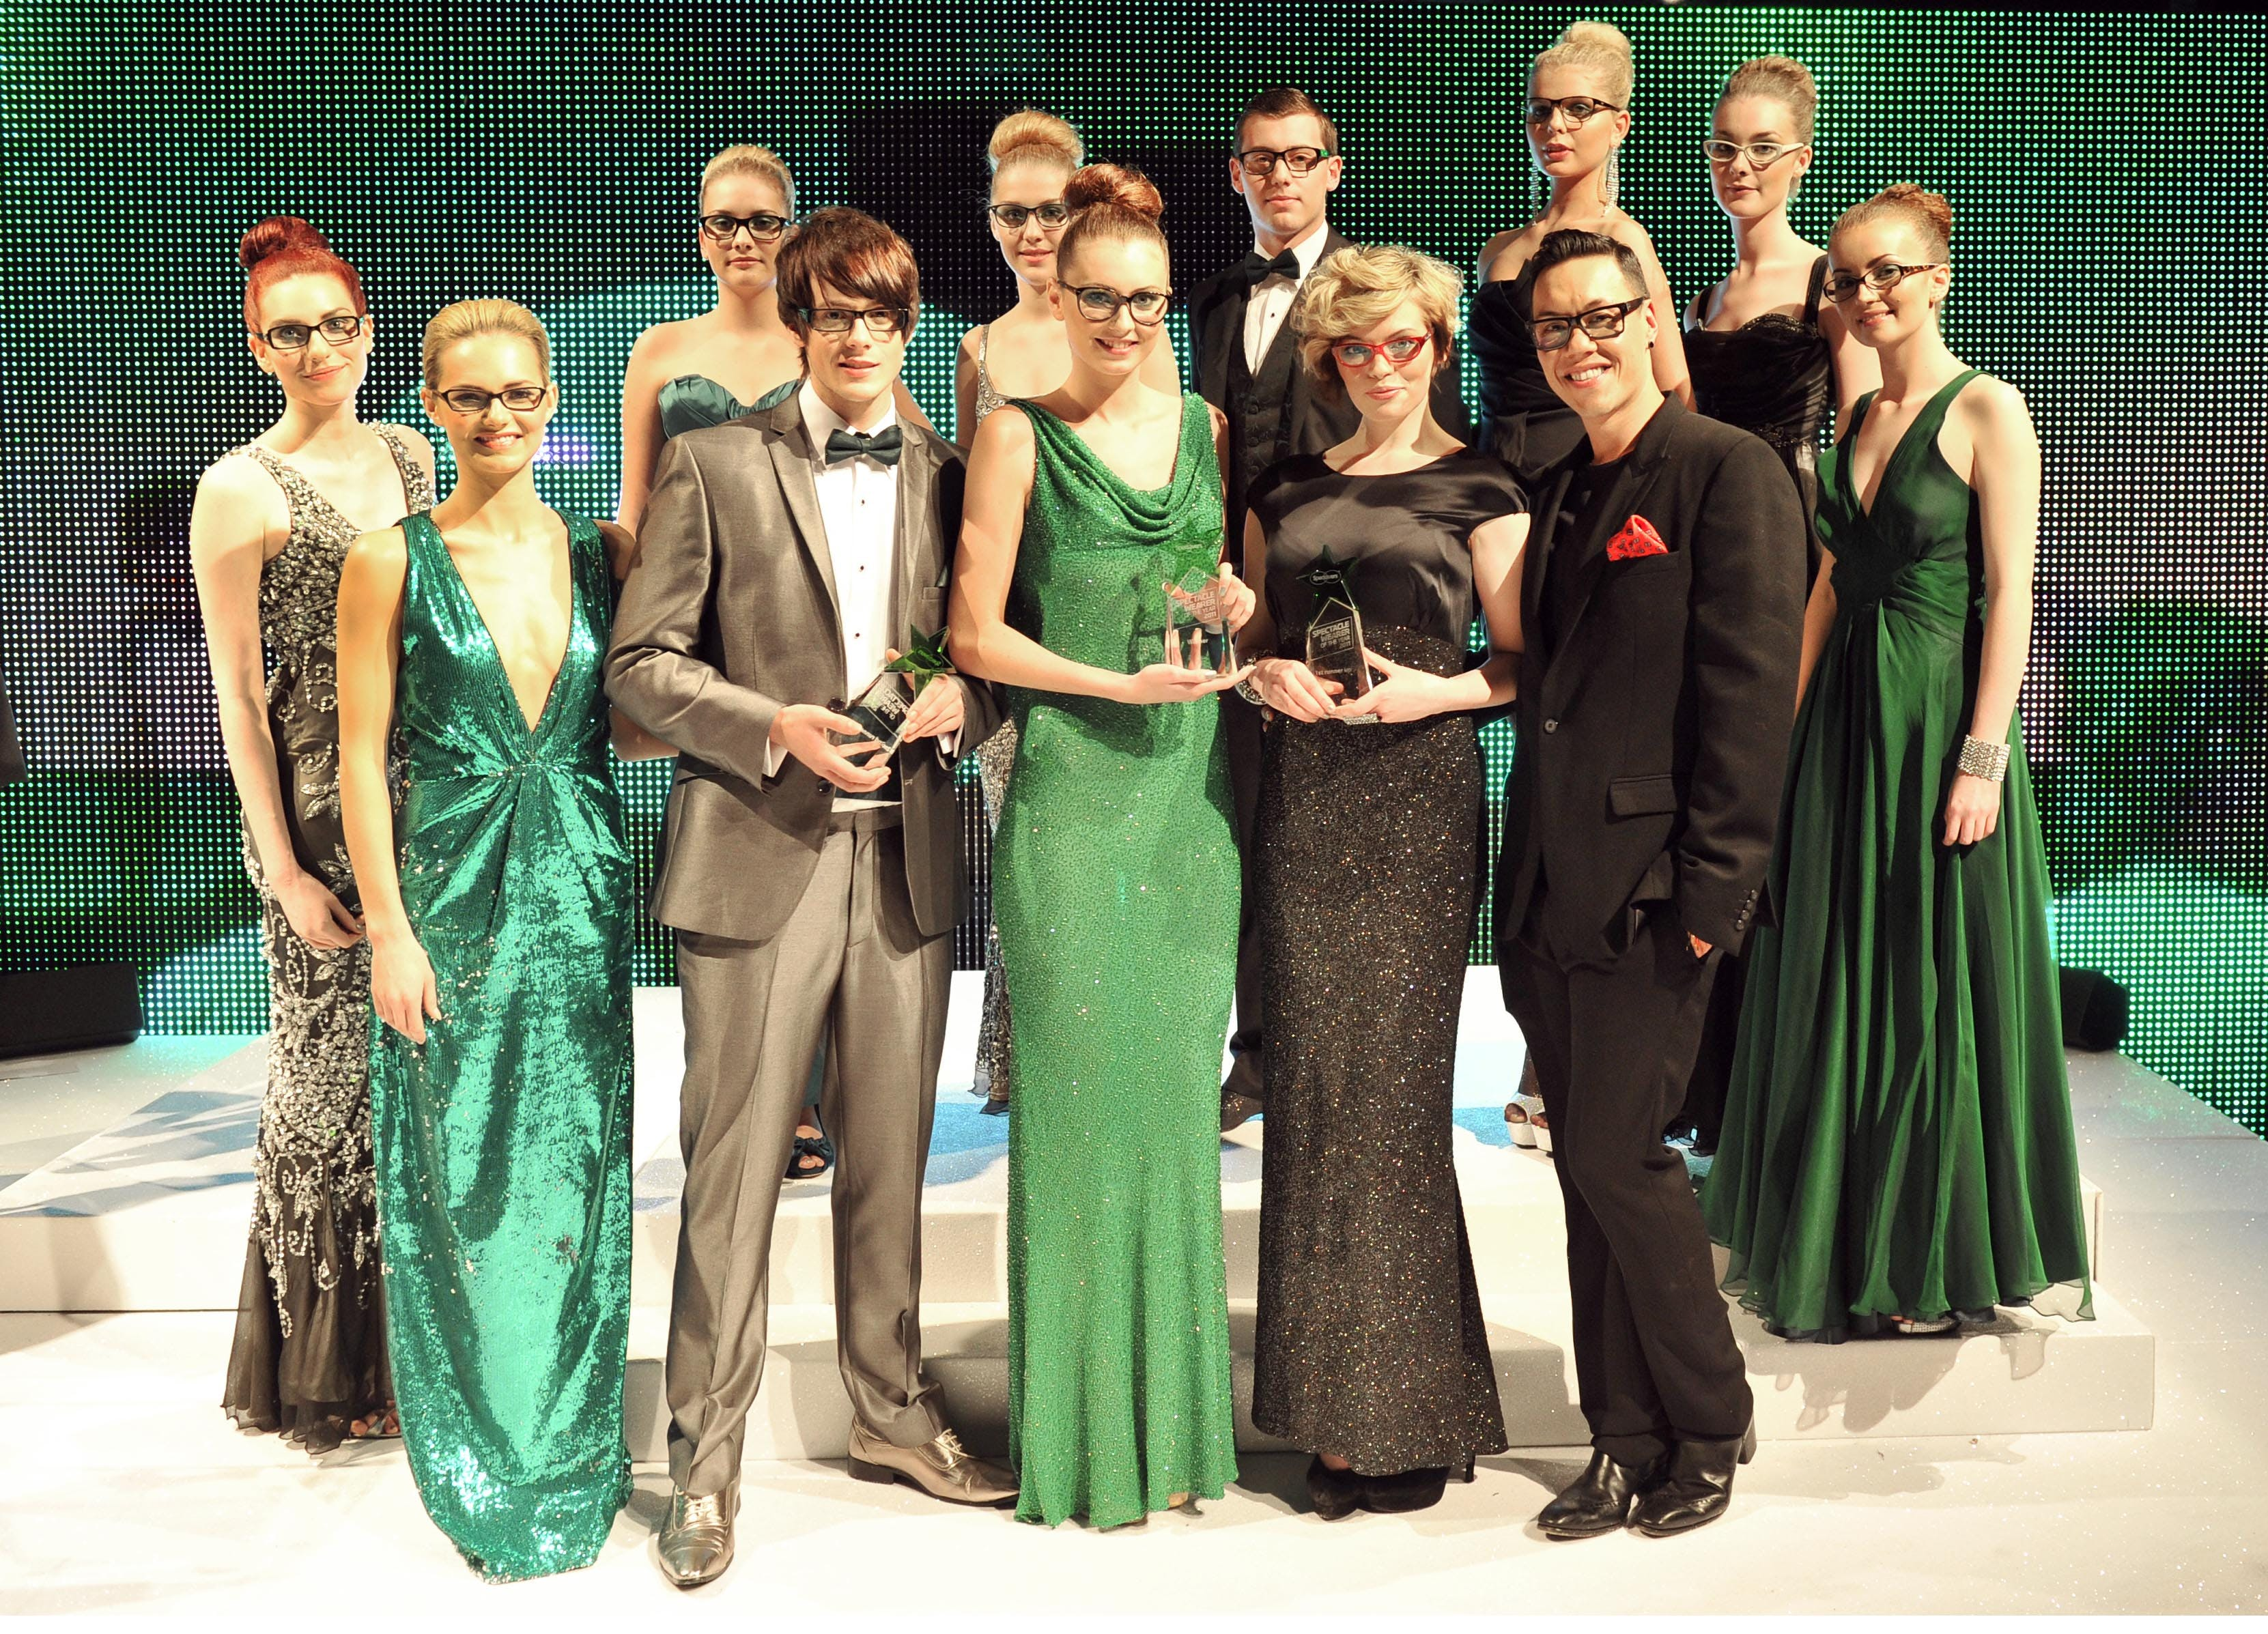 Spectacle Wearer of the Year Finalists with Kara Tointon and Gok Wan